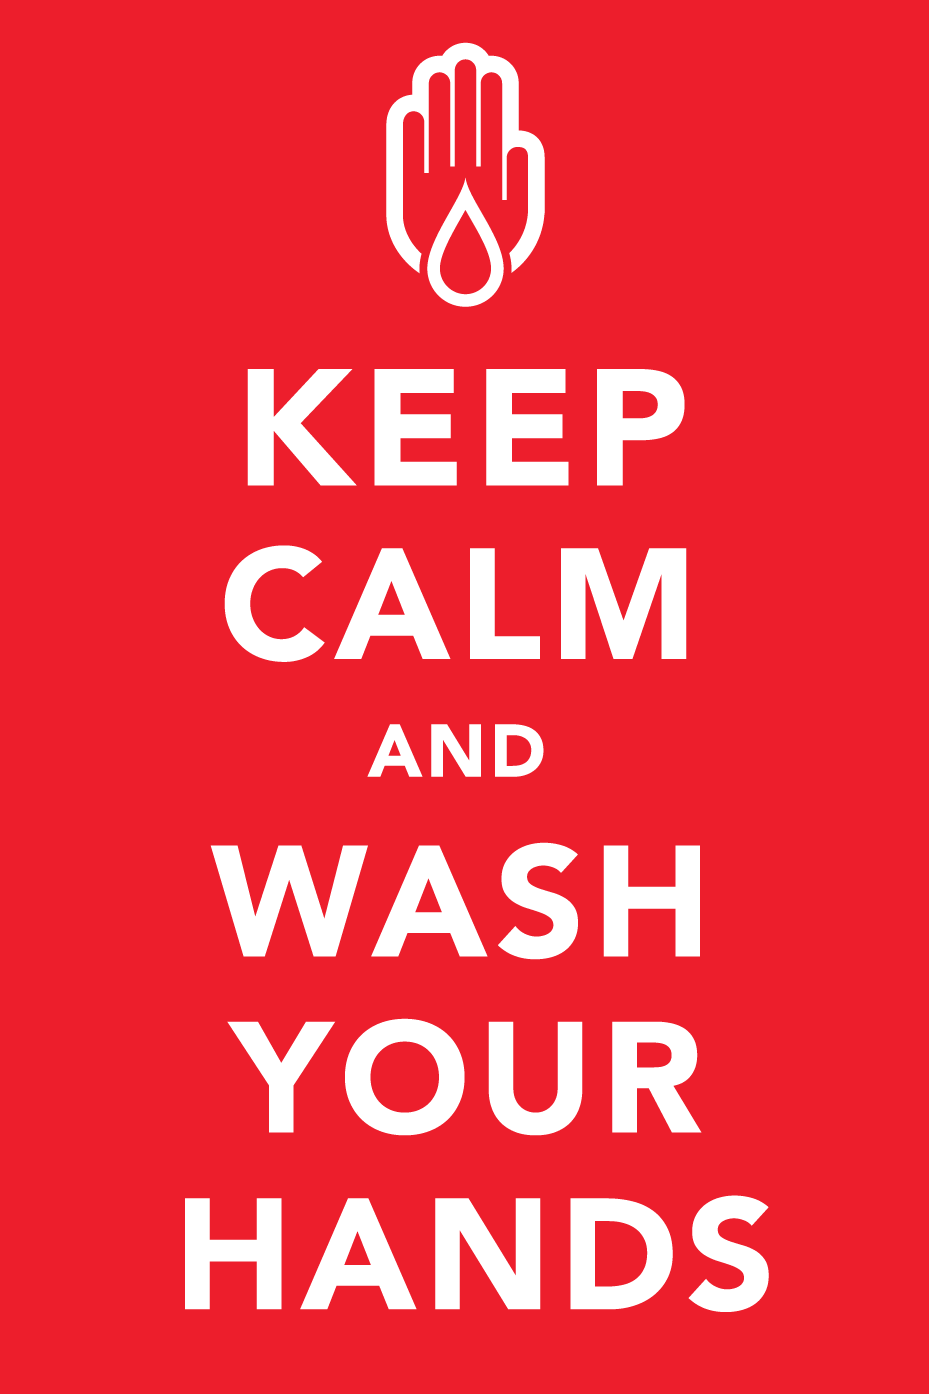 2014-10-08-KeepCalmWashHands.png